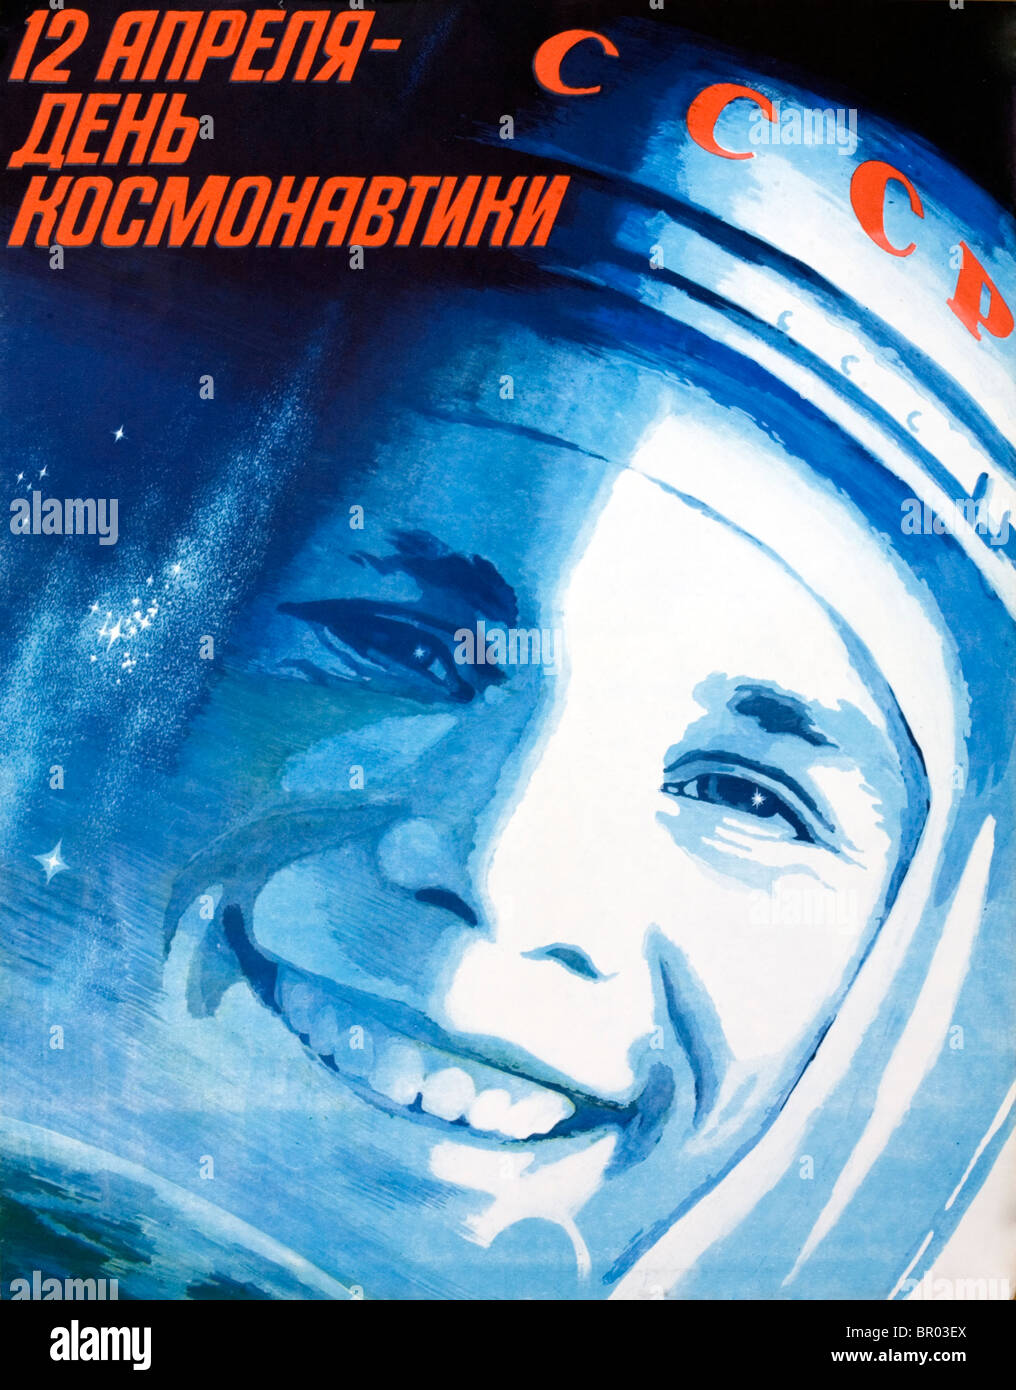 Soviet memorial dedicated to cosmonauts from kaliningrad - Soviet Poster Celebrating The First Manned Space Flight By Yuri Gagarin On 12th April 1961